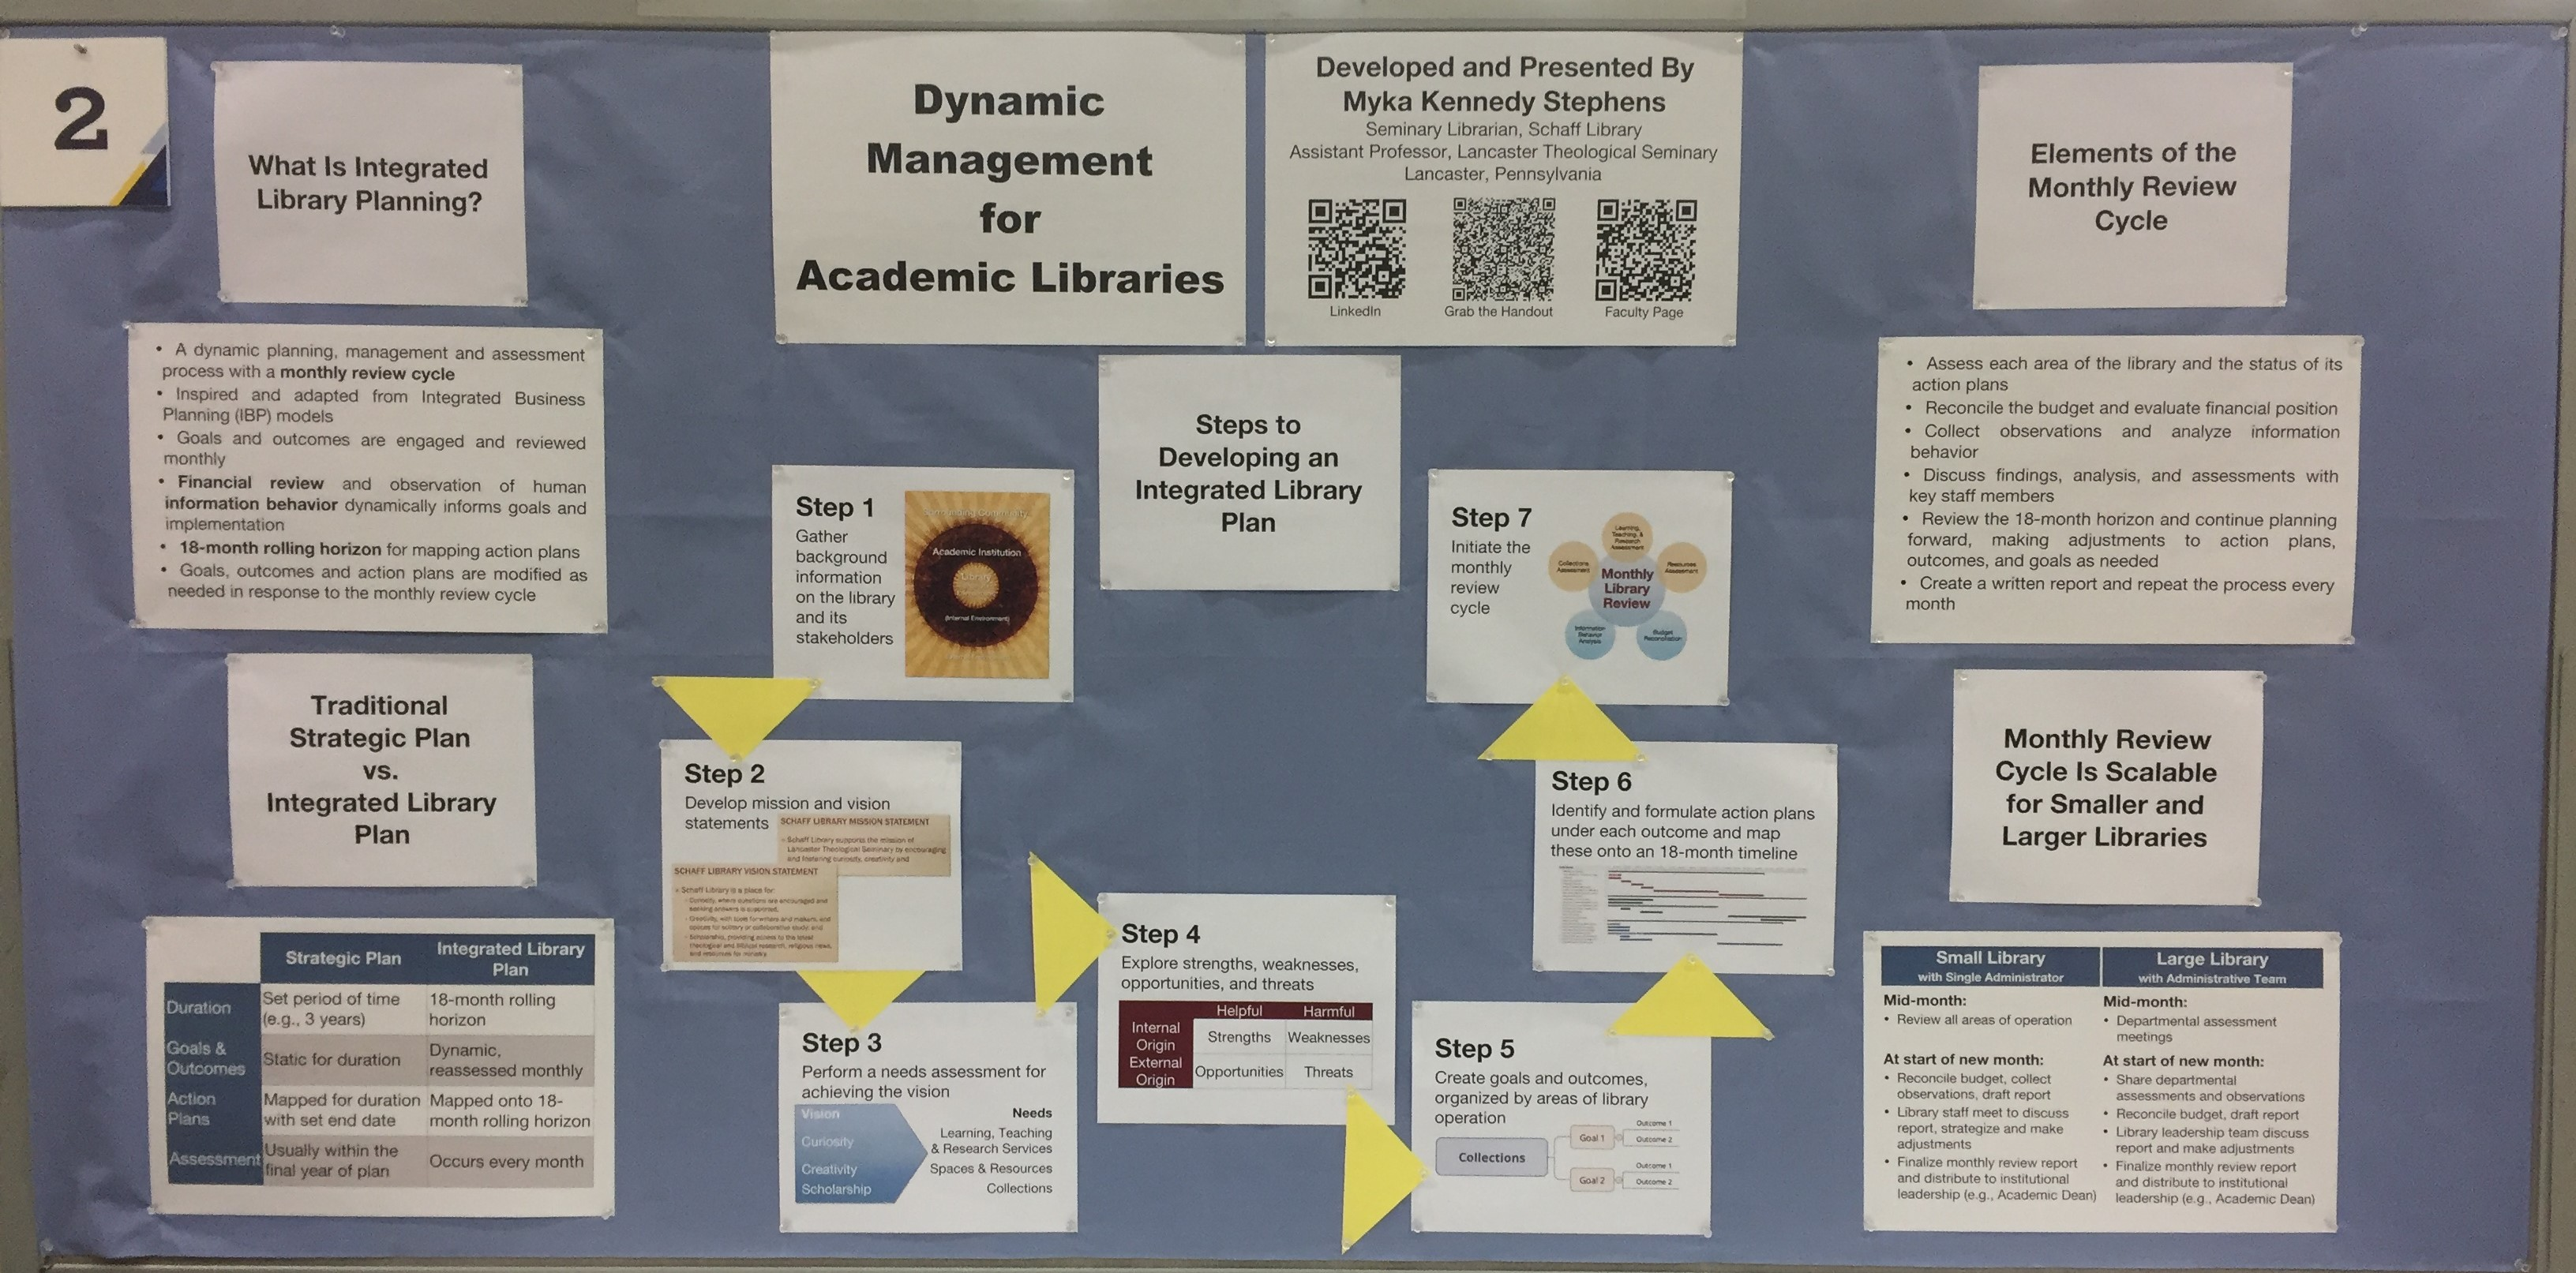 Dynamic Management for Academic Libraries at ACRL 2017